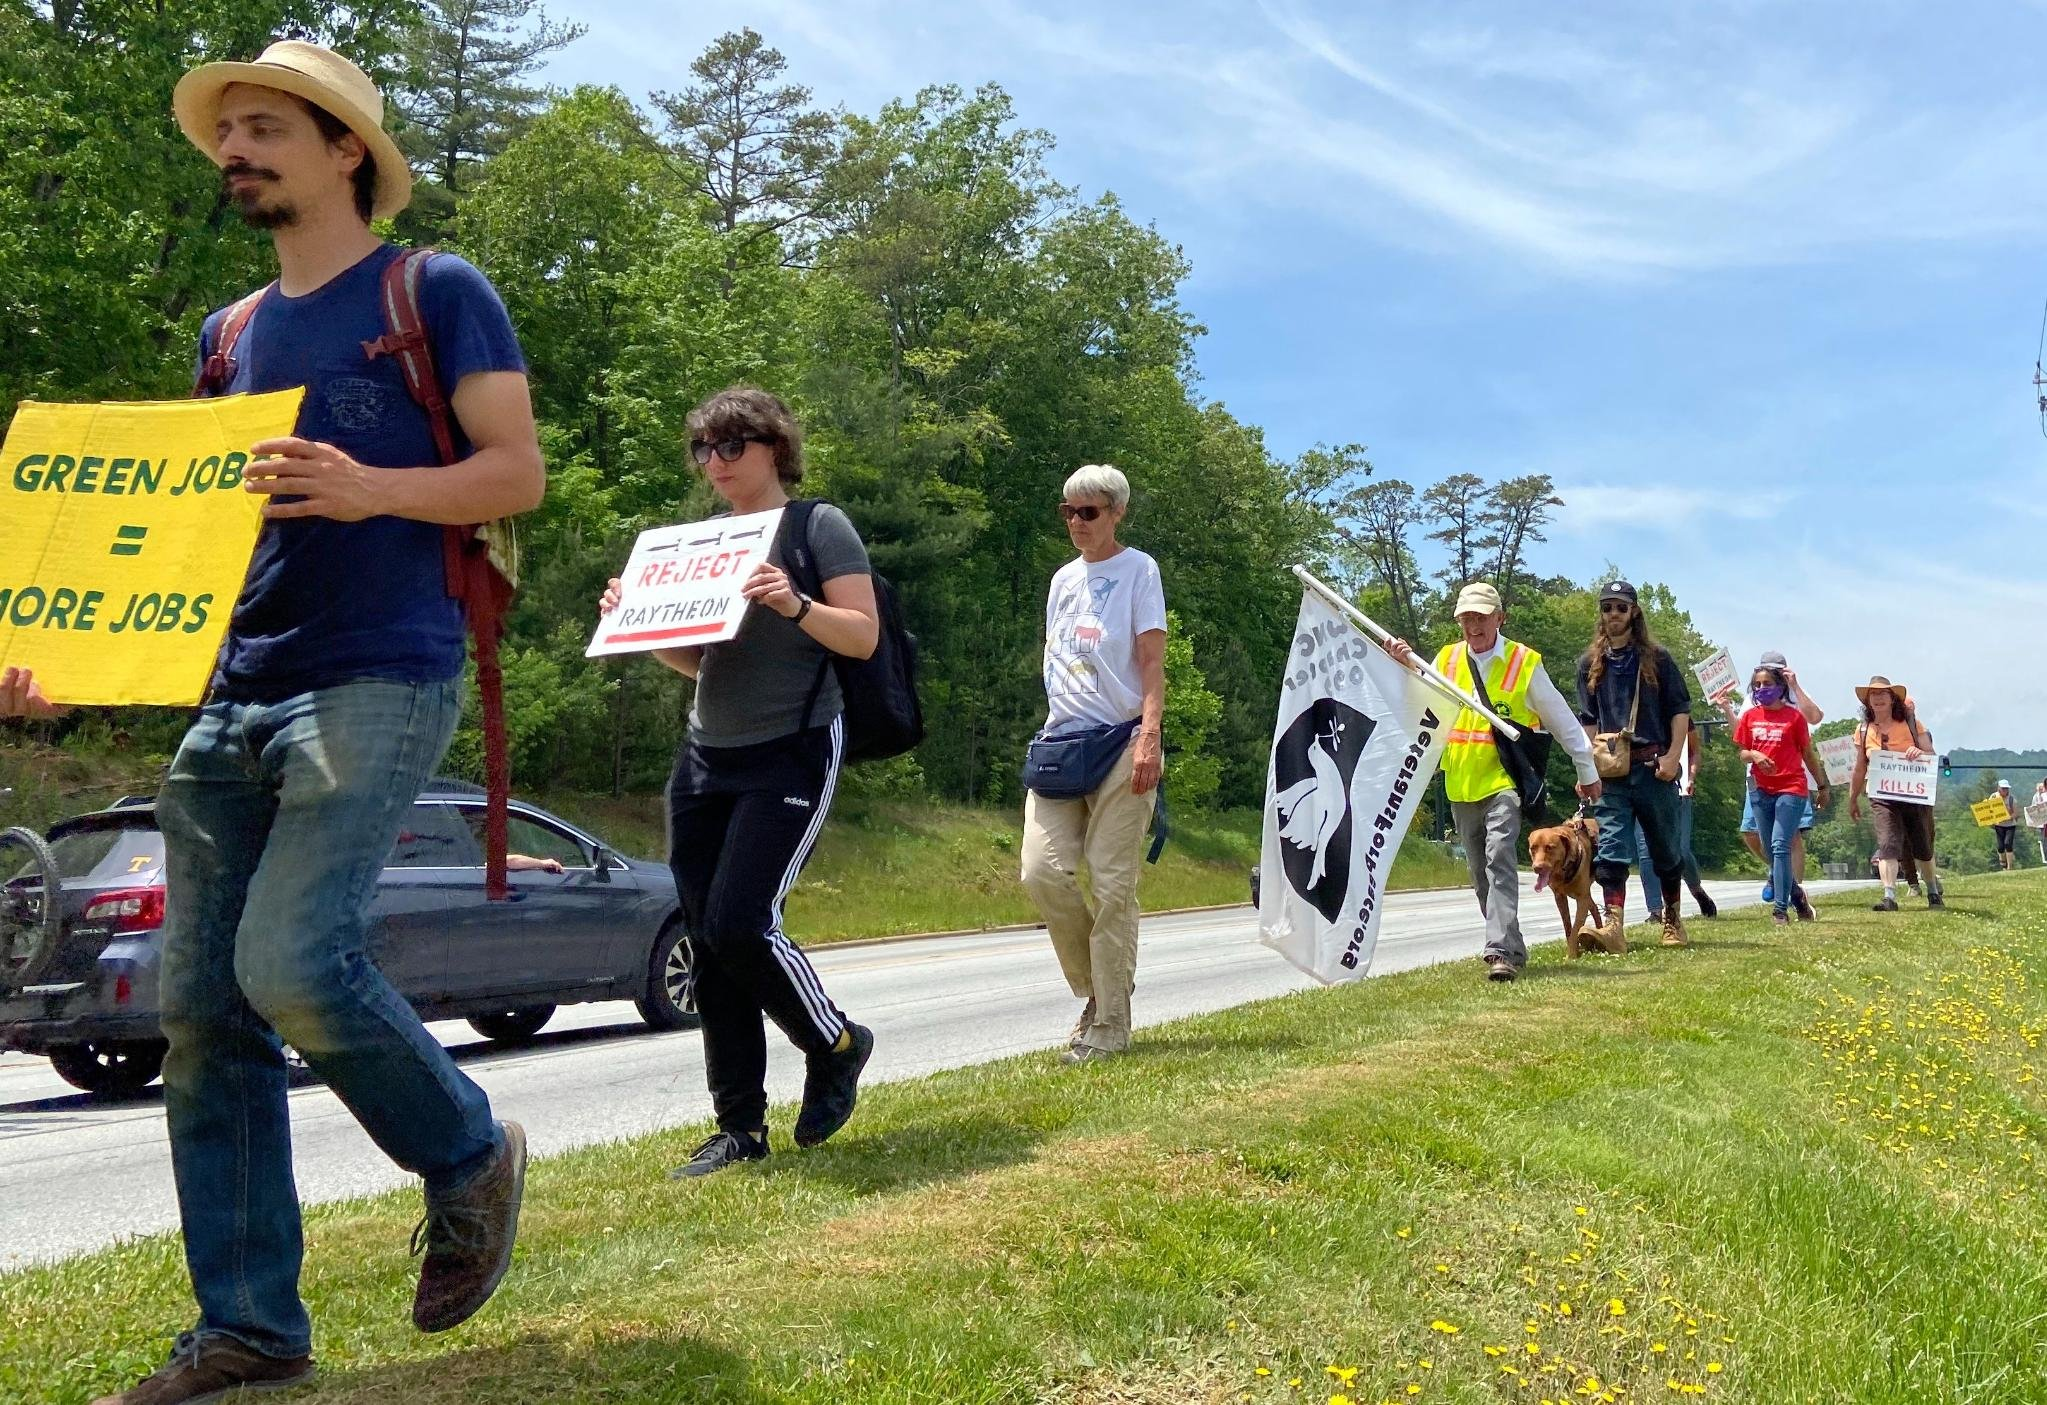 'Honk for humane jobs': NC activists challenge subsidies for weapons maker